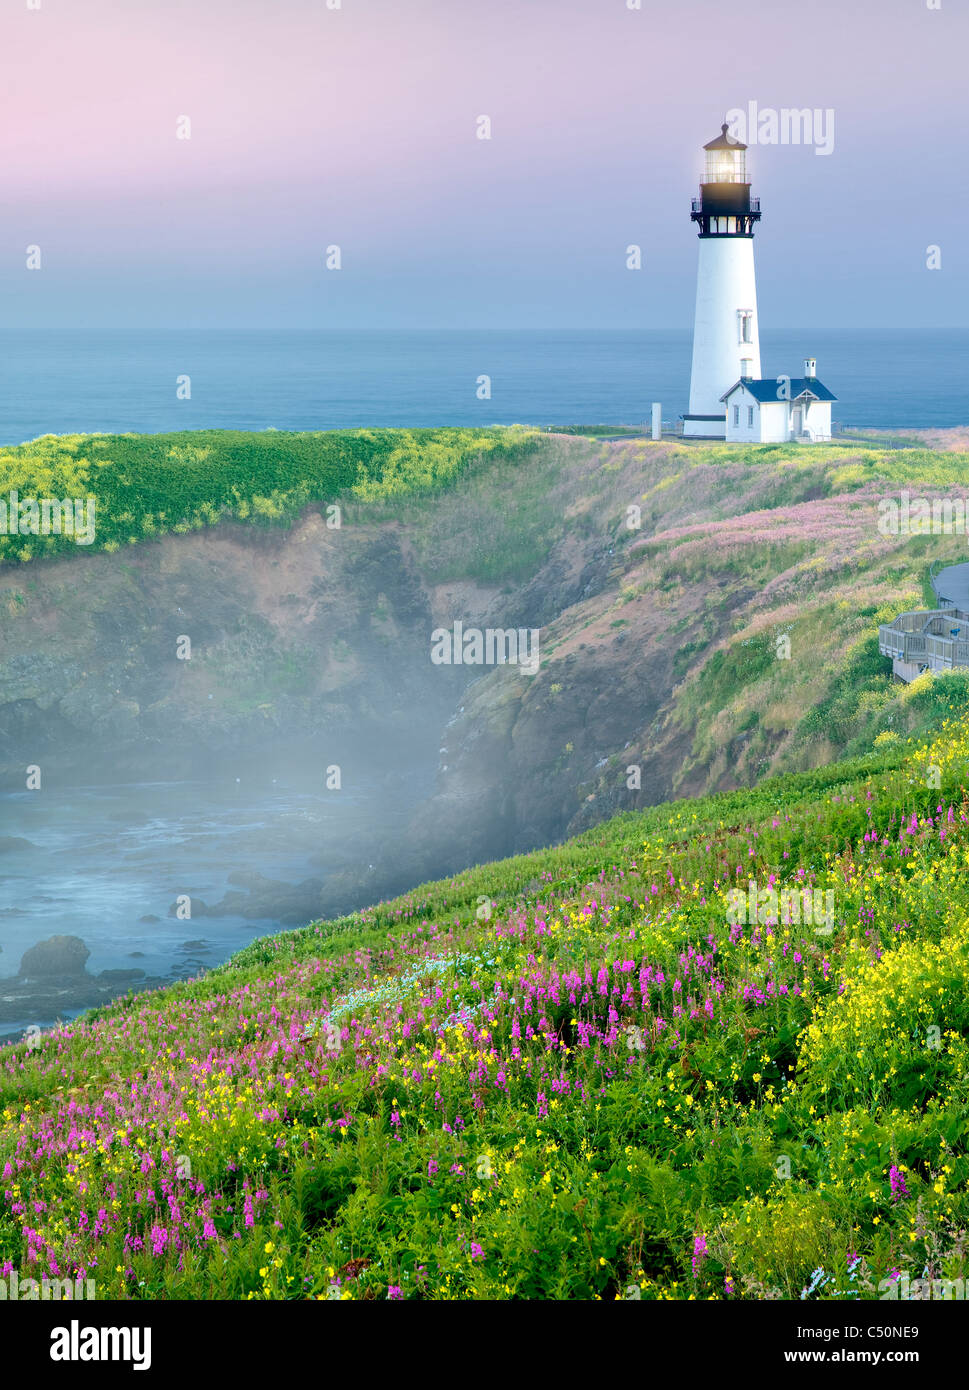 Yaquina Lighthouse with yellow mustard and fireweed. Yaquina Head, Oregon - Stock Image